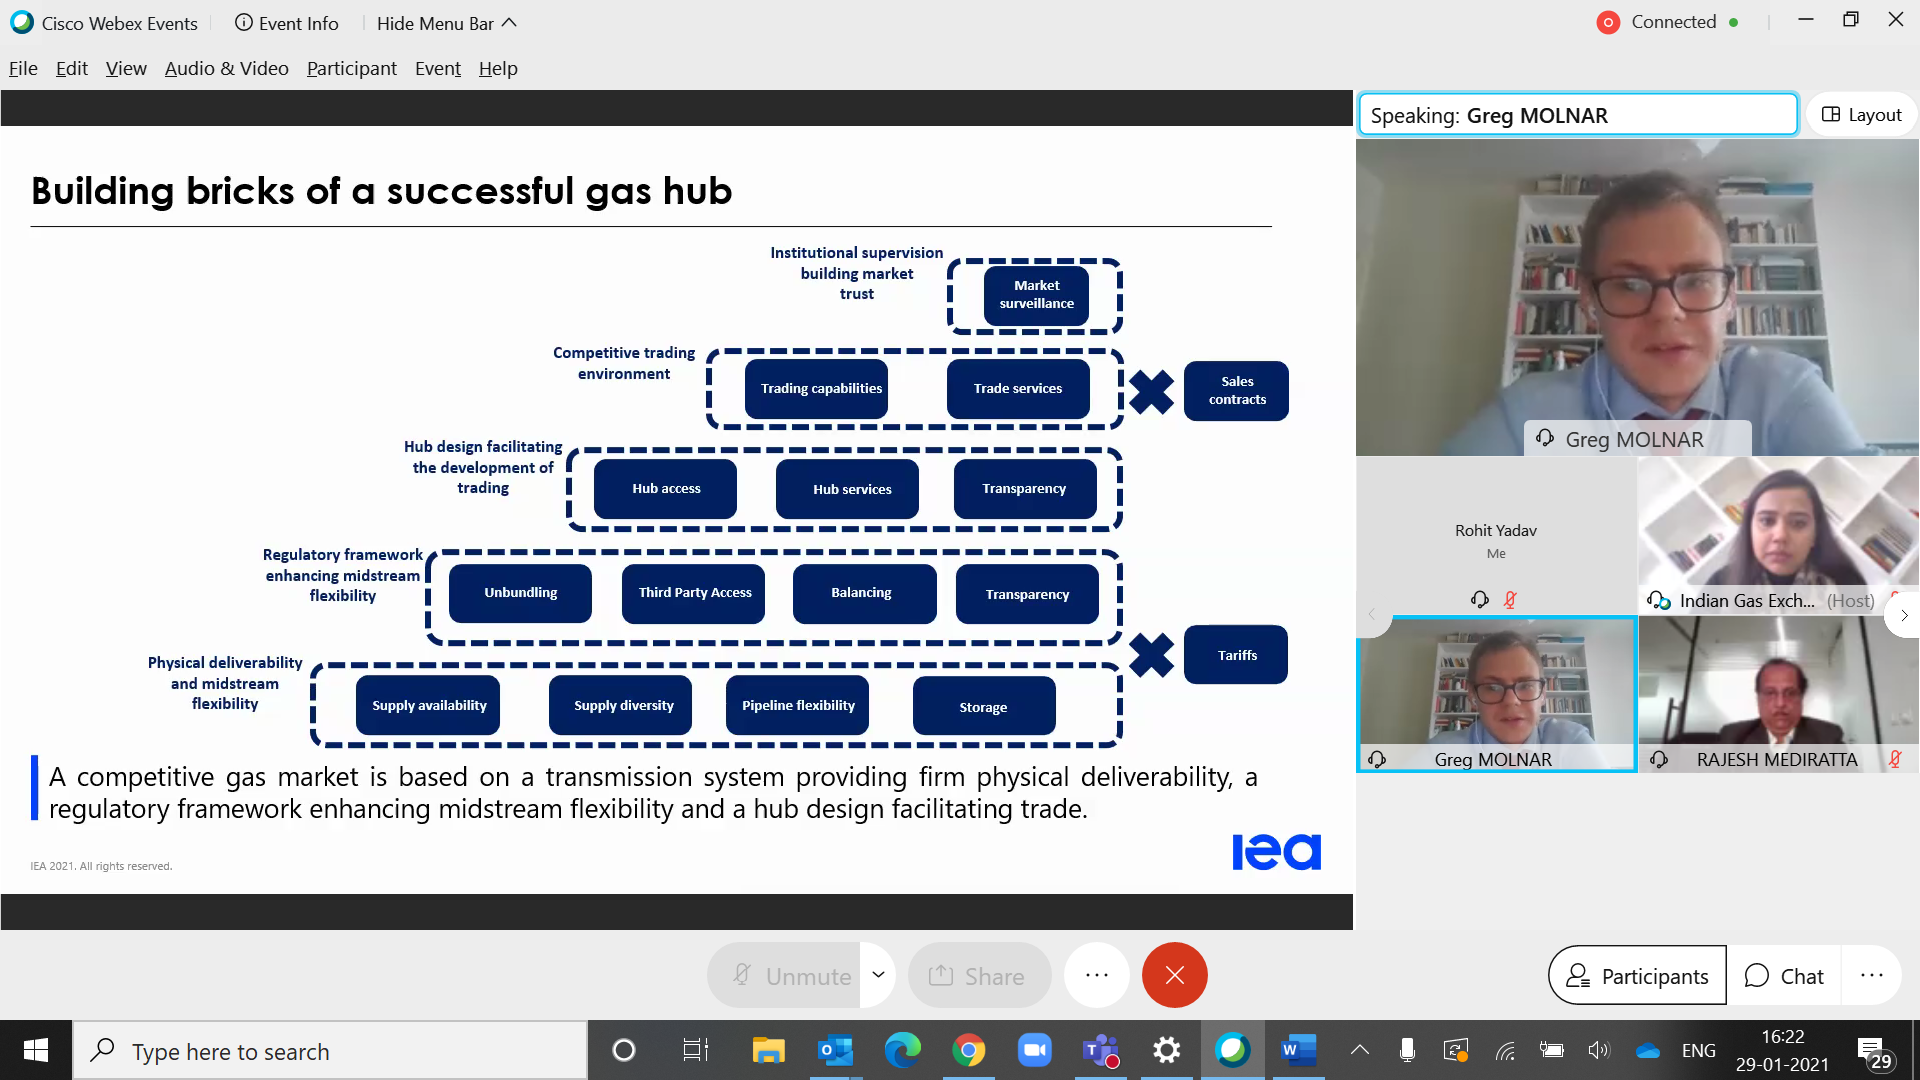 Webinar on Overview of Recent Global Gas Trends-image4